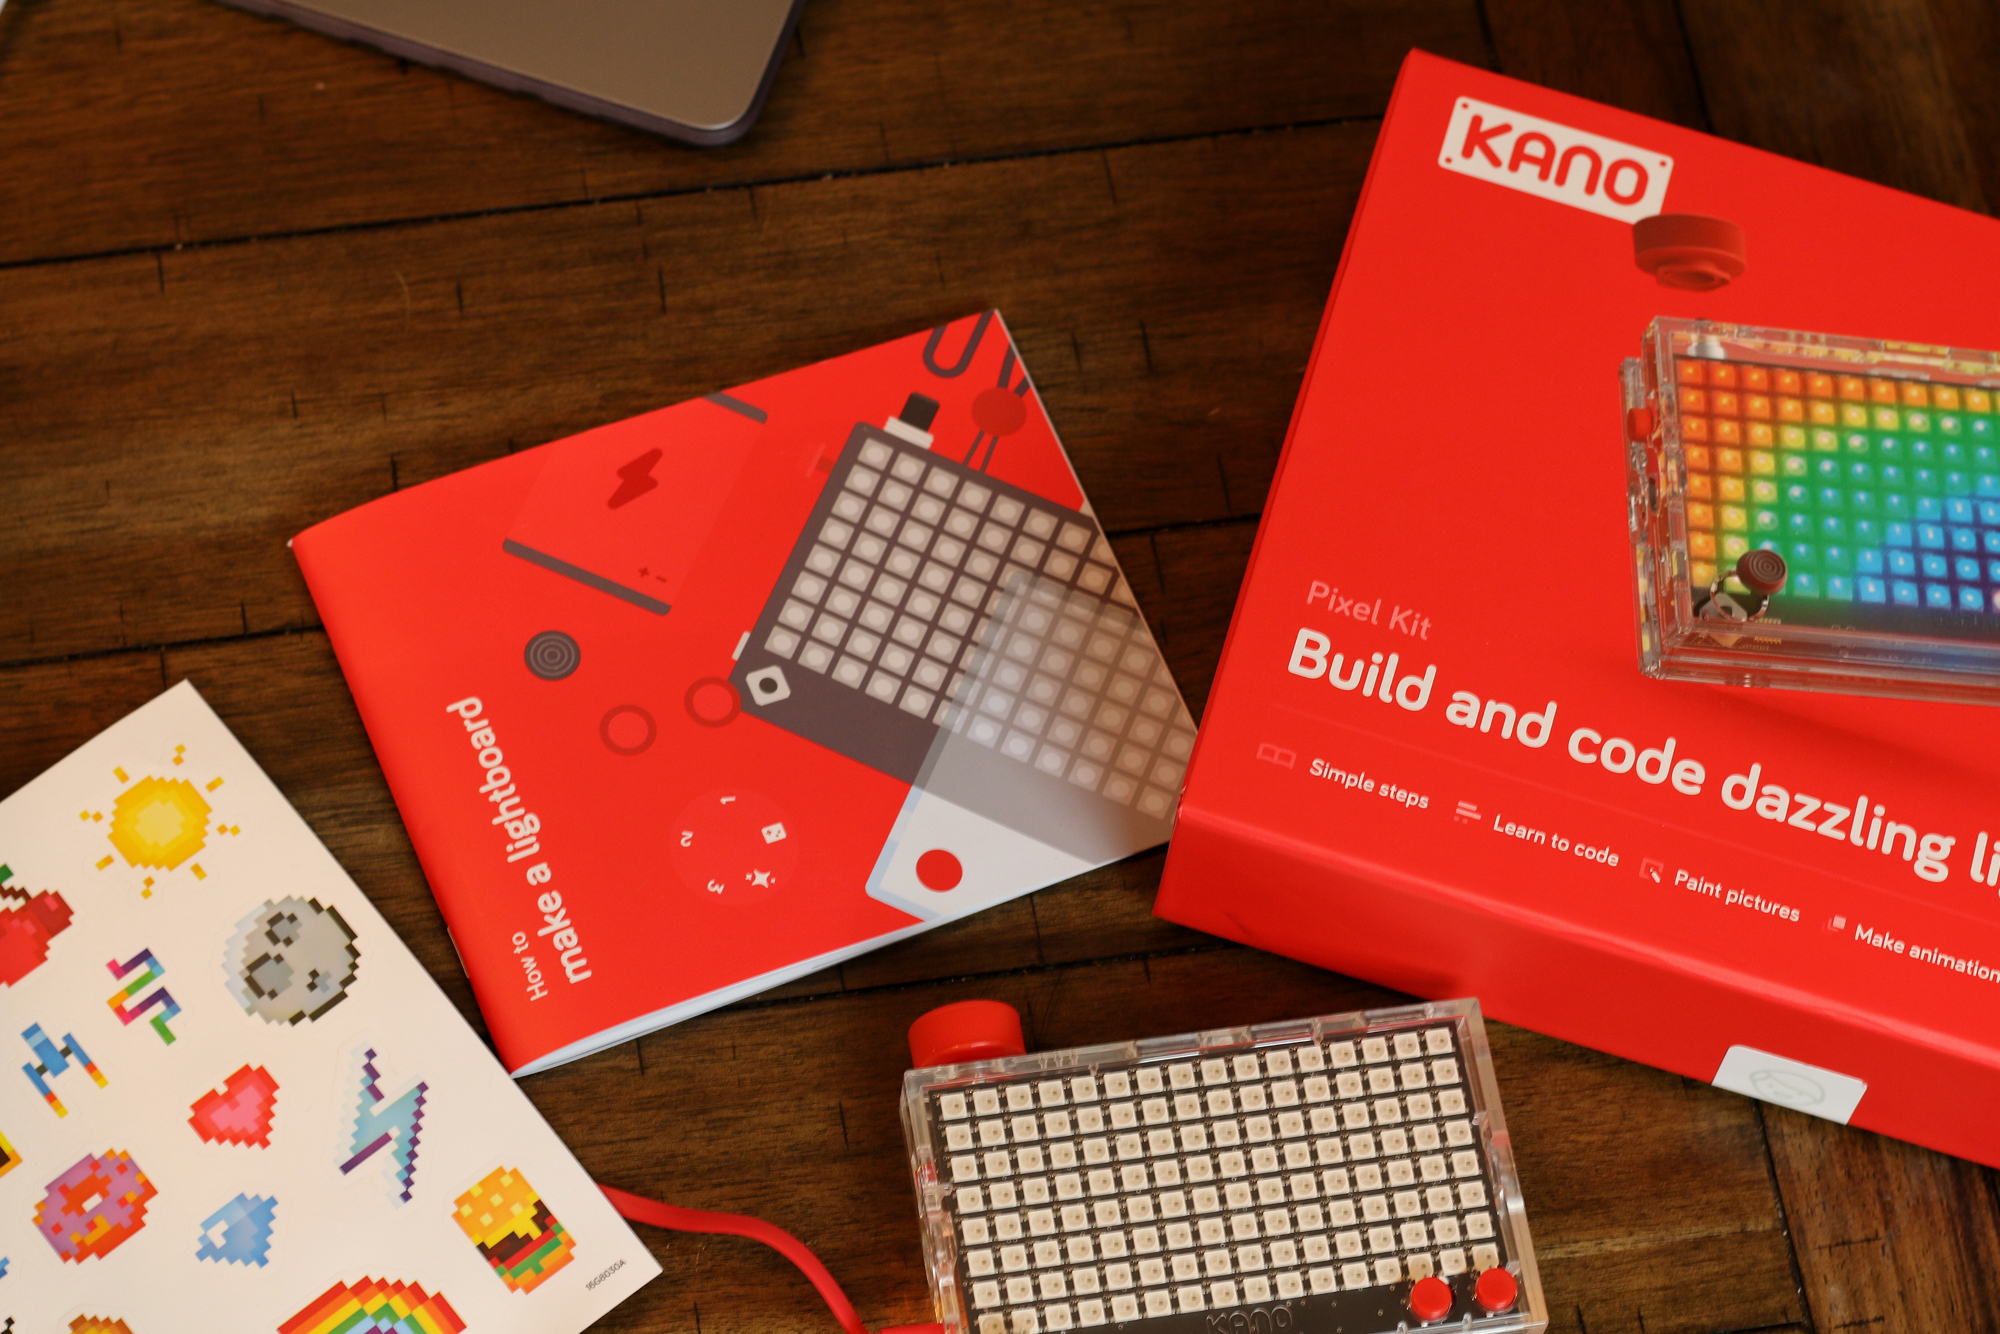 Kano The Pixel Kit for kids